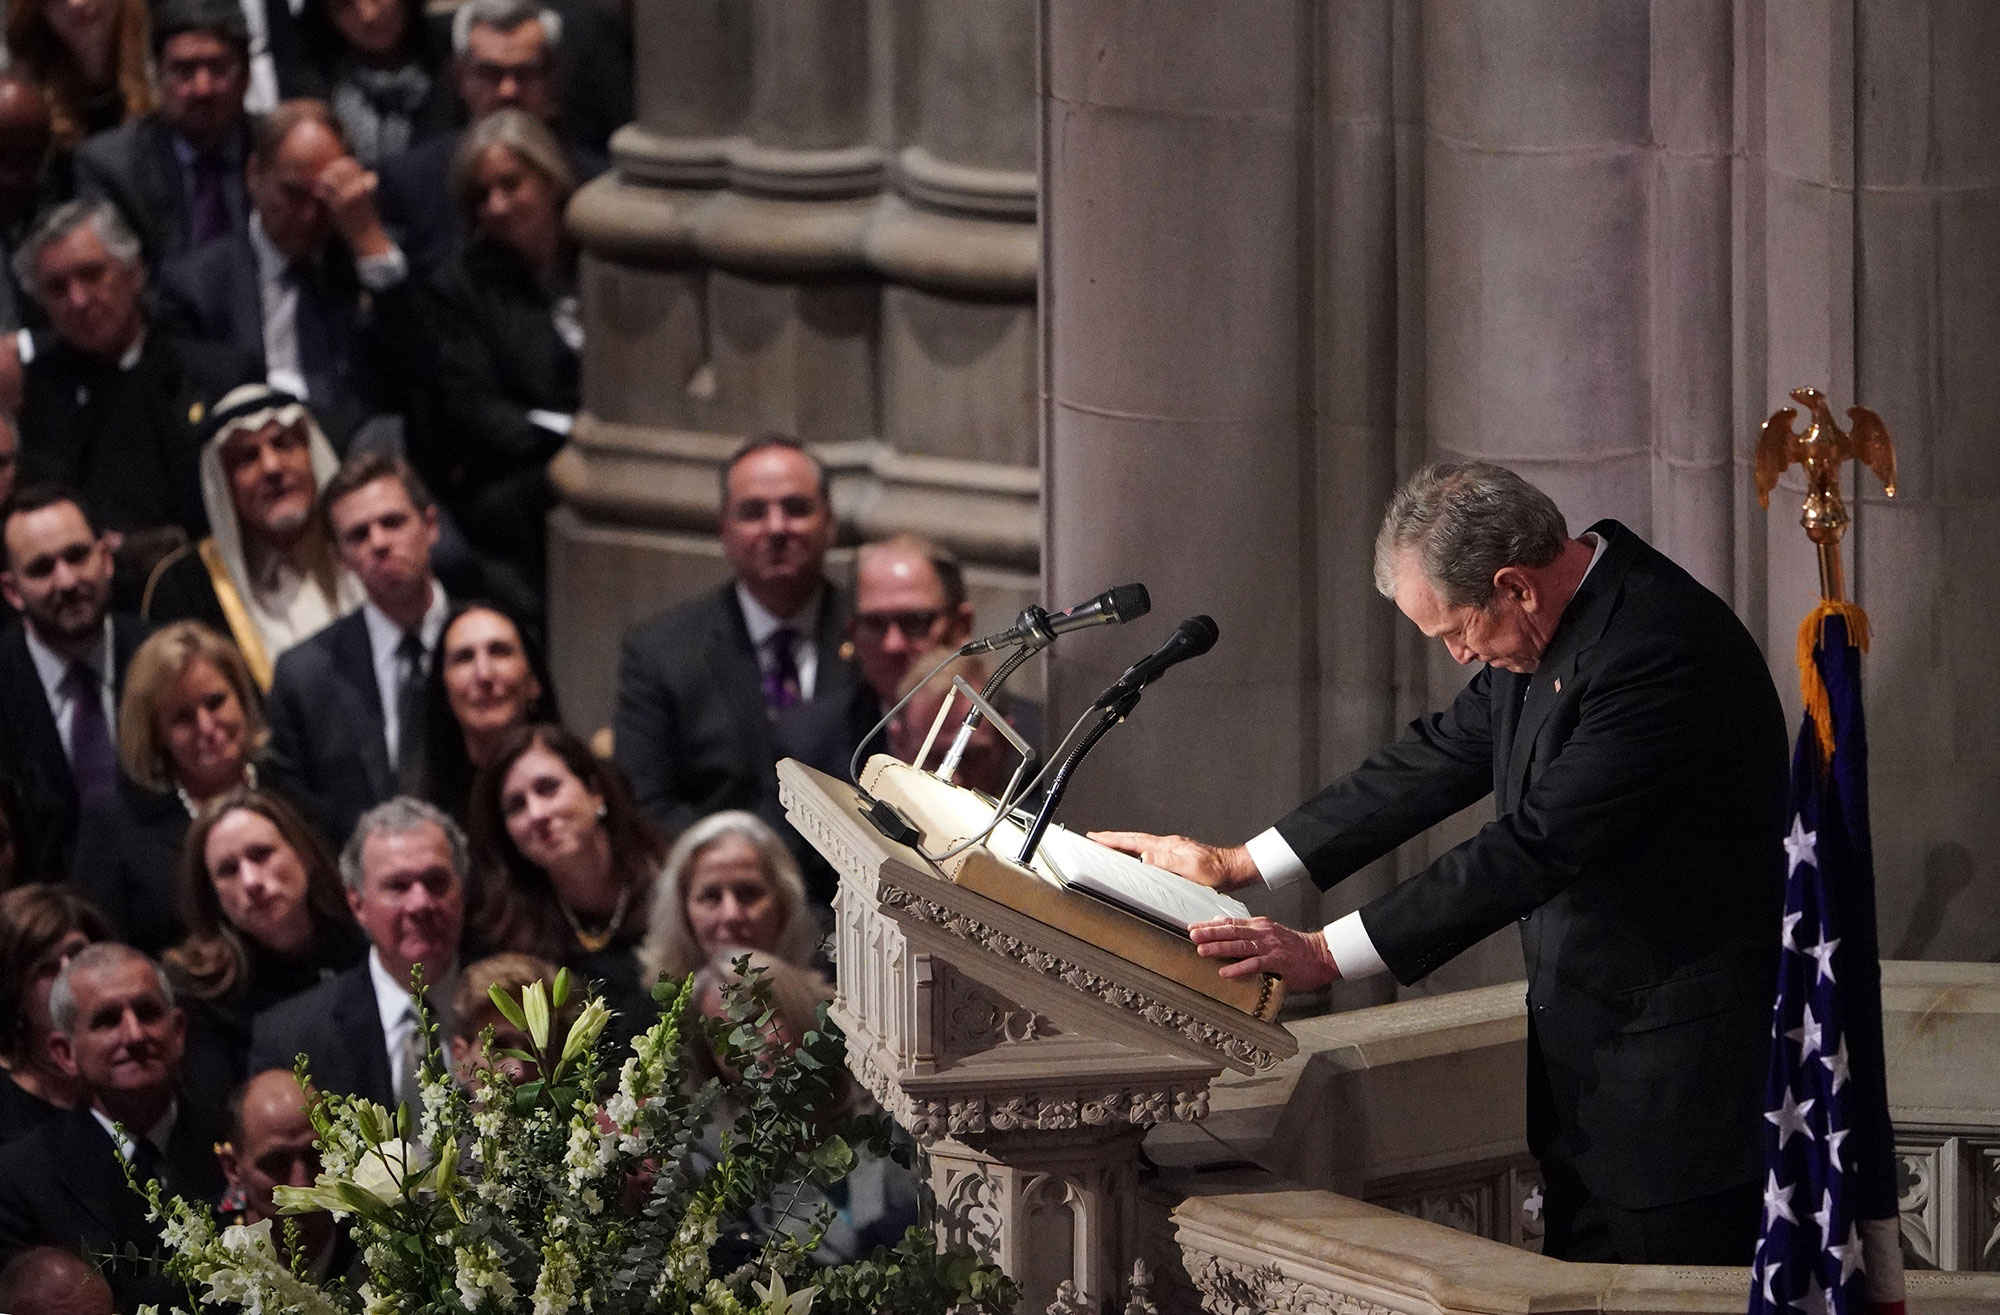 "<div class=""meta image-caption""><div class=""origin-logo origin-image none""><span>none</span></div><span class=""caption-text"">Former US President George W. Bush speaks during the funeral service for former US President George H. W. Bush at the National Cathedral in Washington, DC on December 5, 2018. (MANDEL NGAN/AFP/Getty Images)</span></div>"